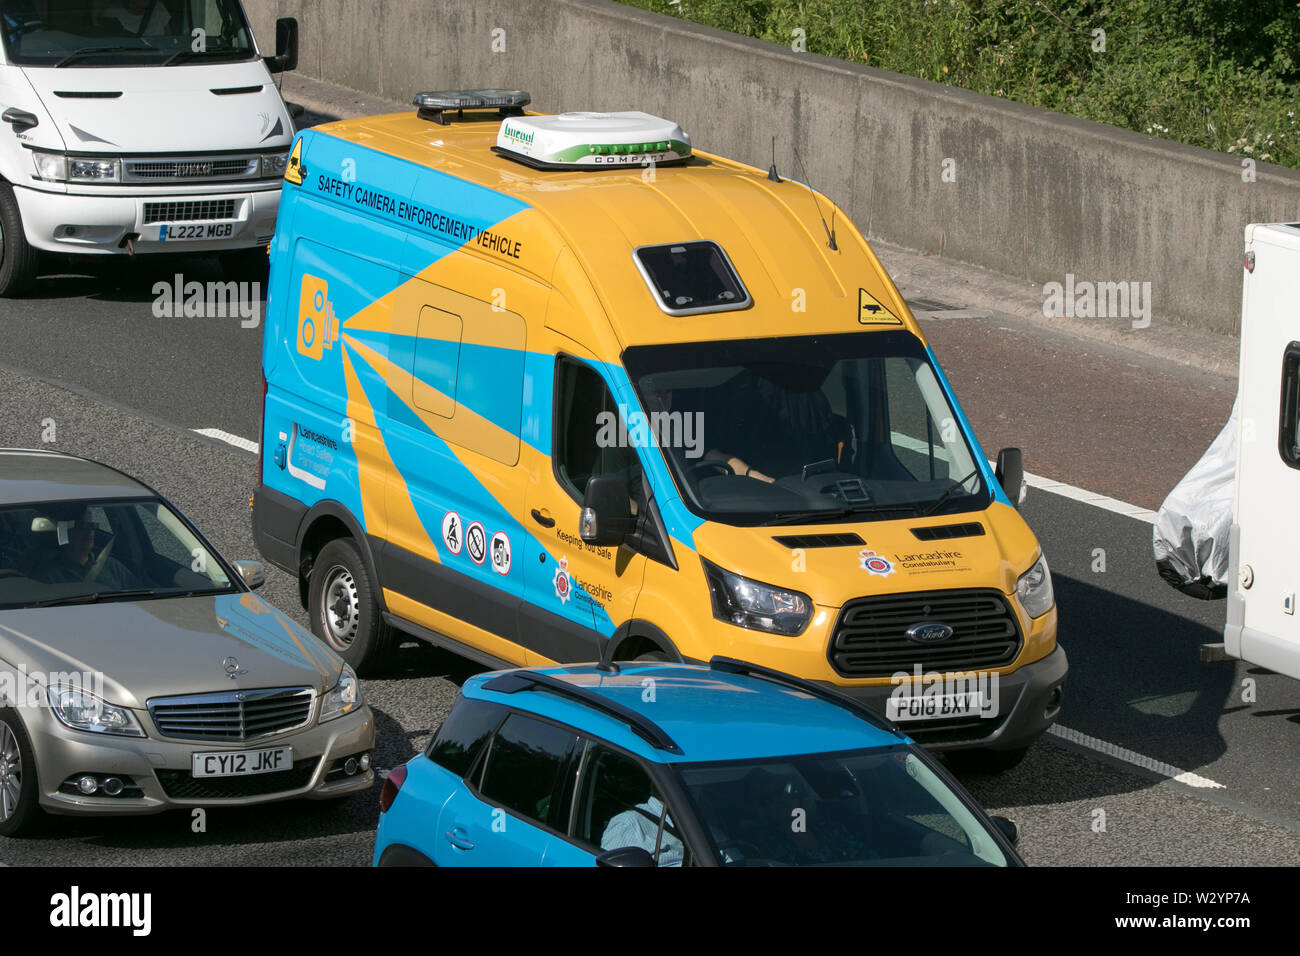 A Lancashire police speed enforcement camera van traveling in heavy traffic jam on the M6 motorway near Lancaster Stock Photo